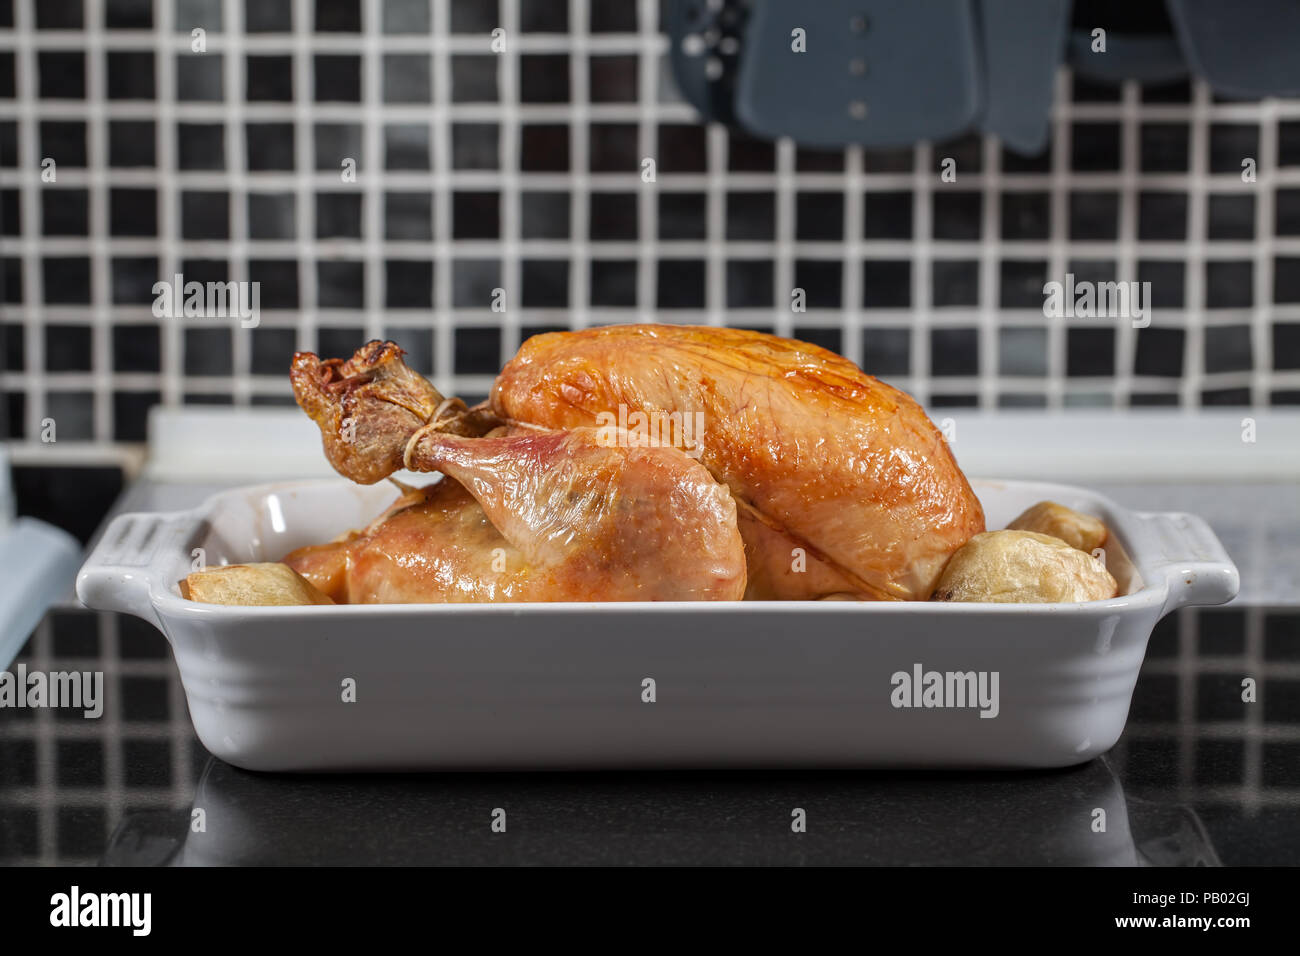 Whole hot oven cooked roast chicken. Prepared sunday meal with potatoes on the kitchen worktop ready for carving and serving for dinner. - Stock Image